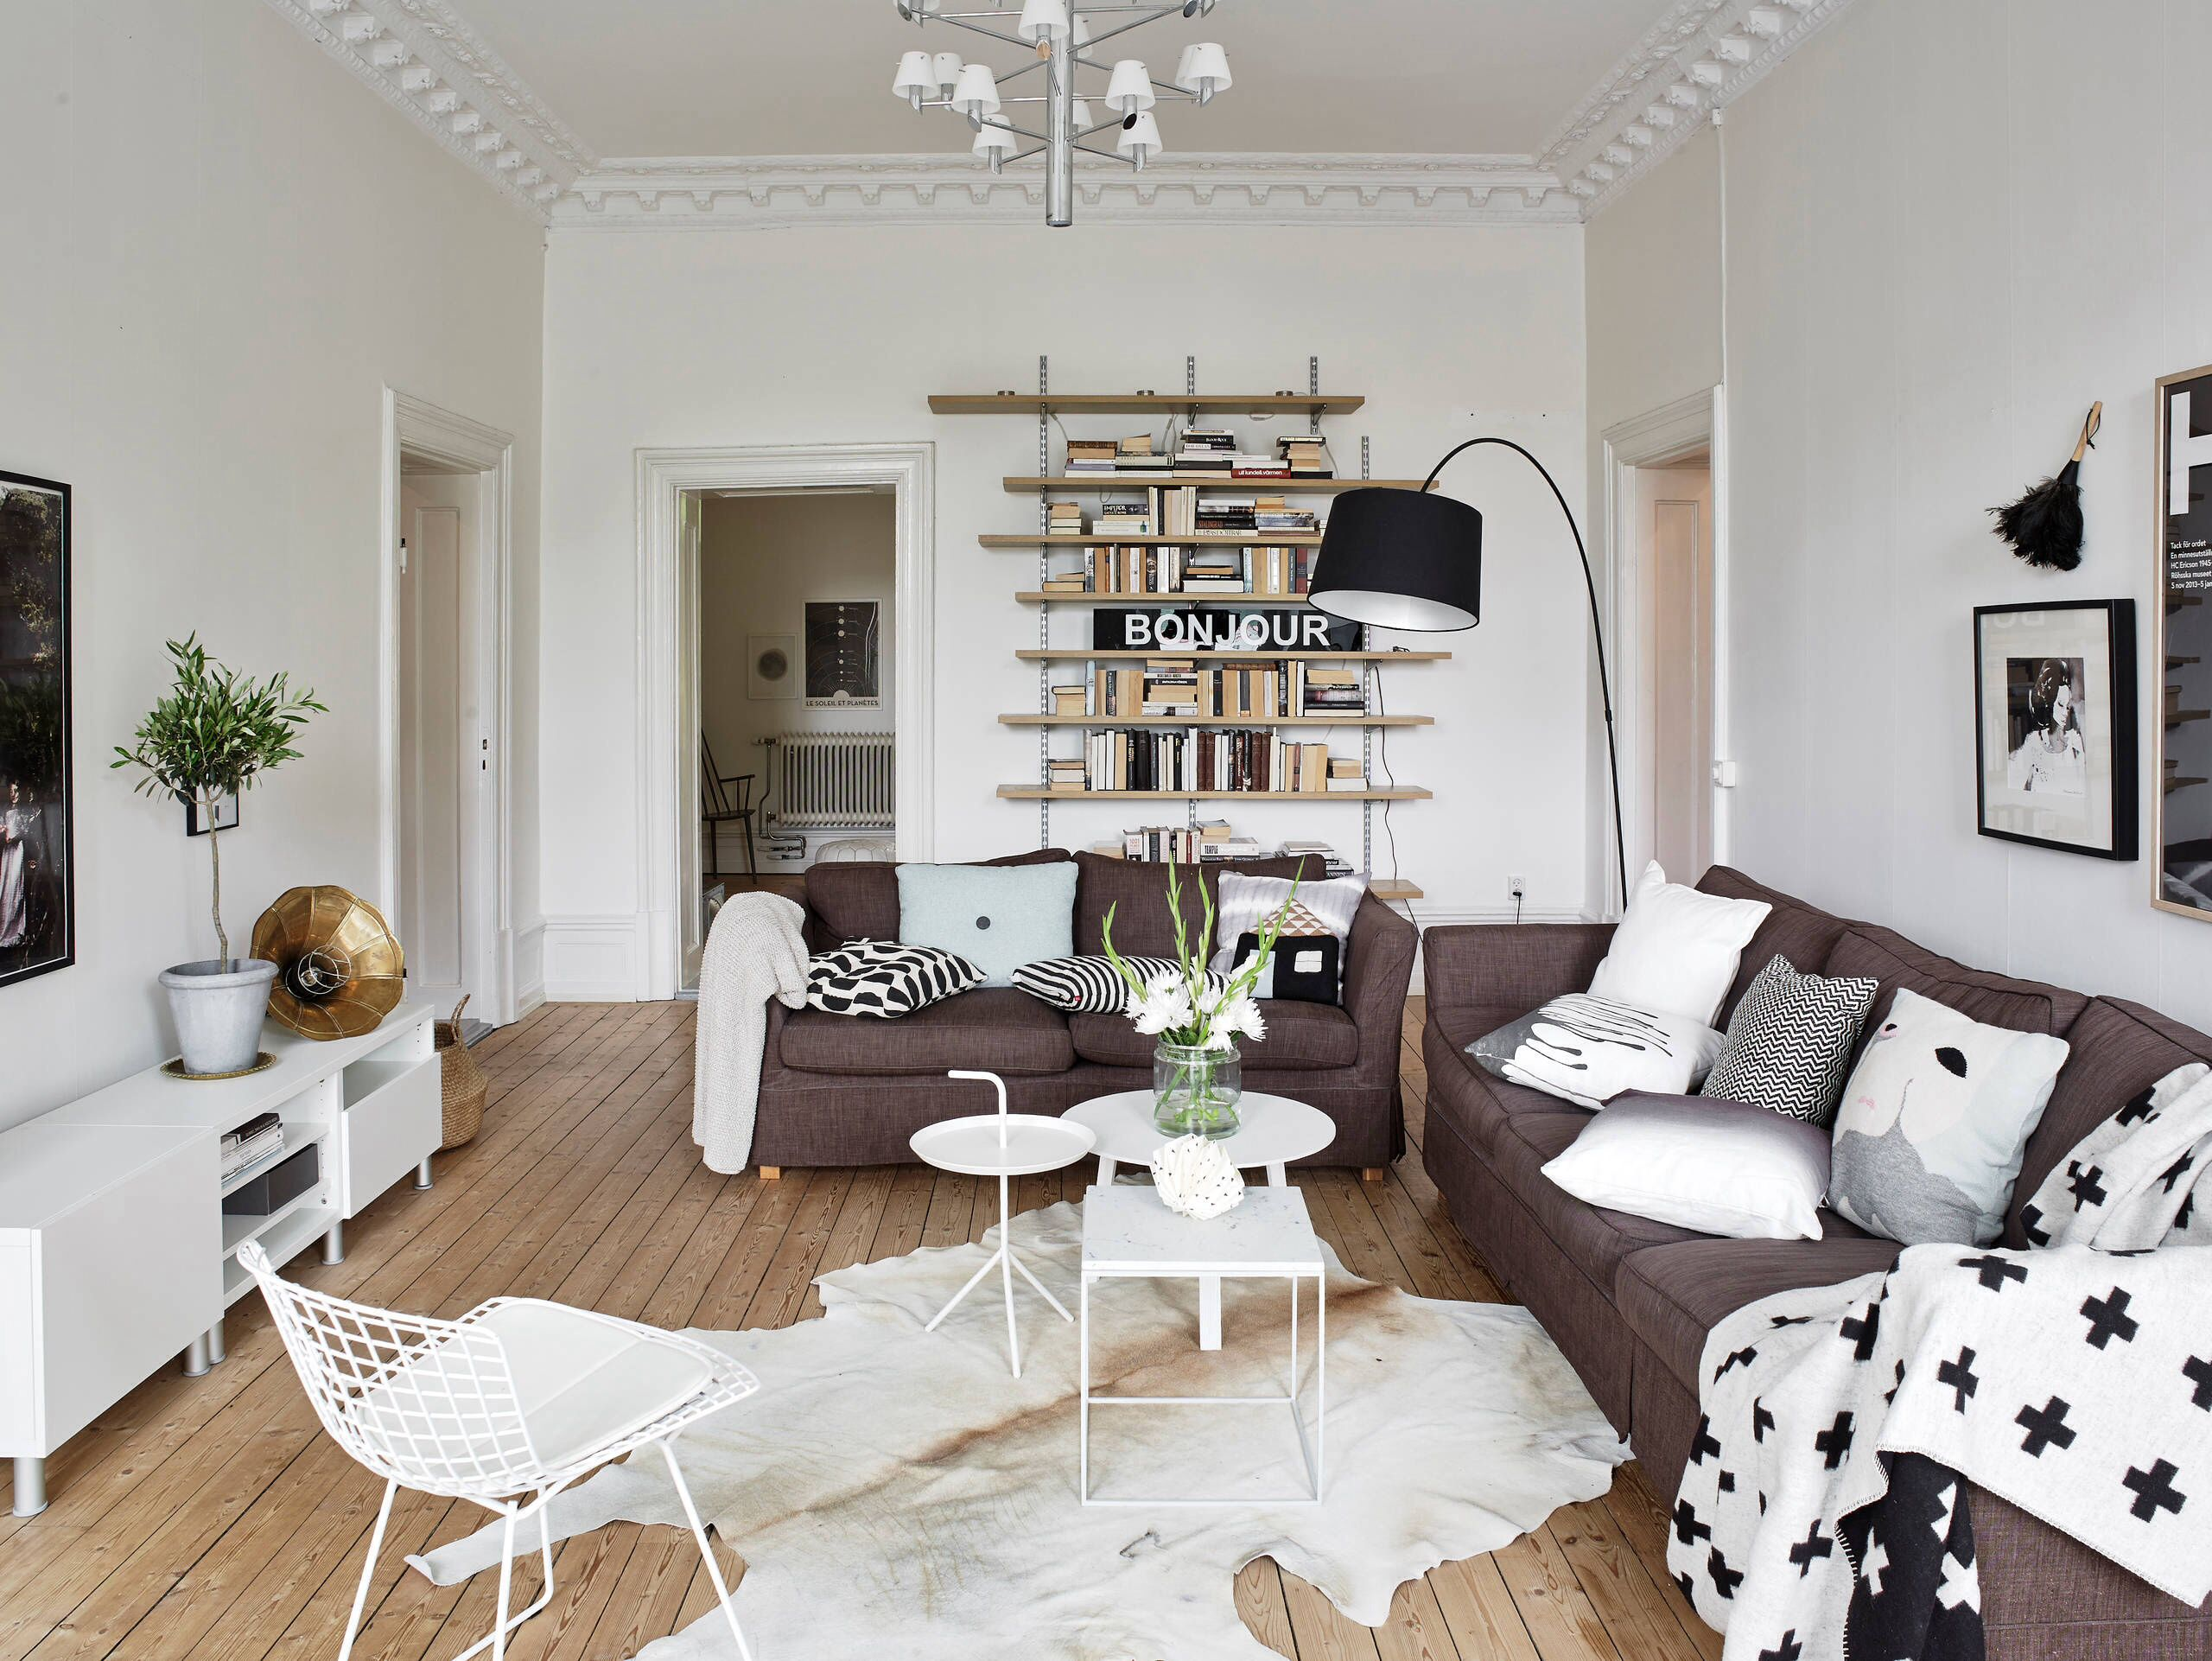 Brown sofa | Decor livingroom | Swedish home | Scandinavian style ...